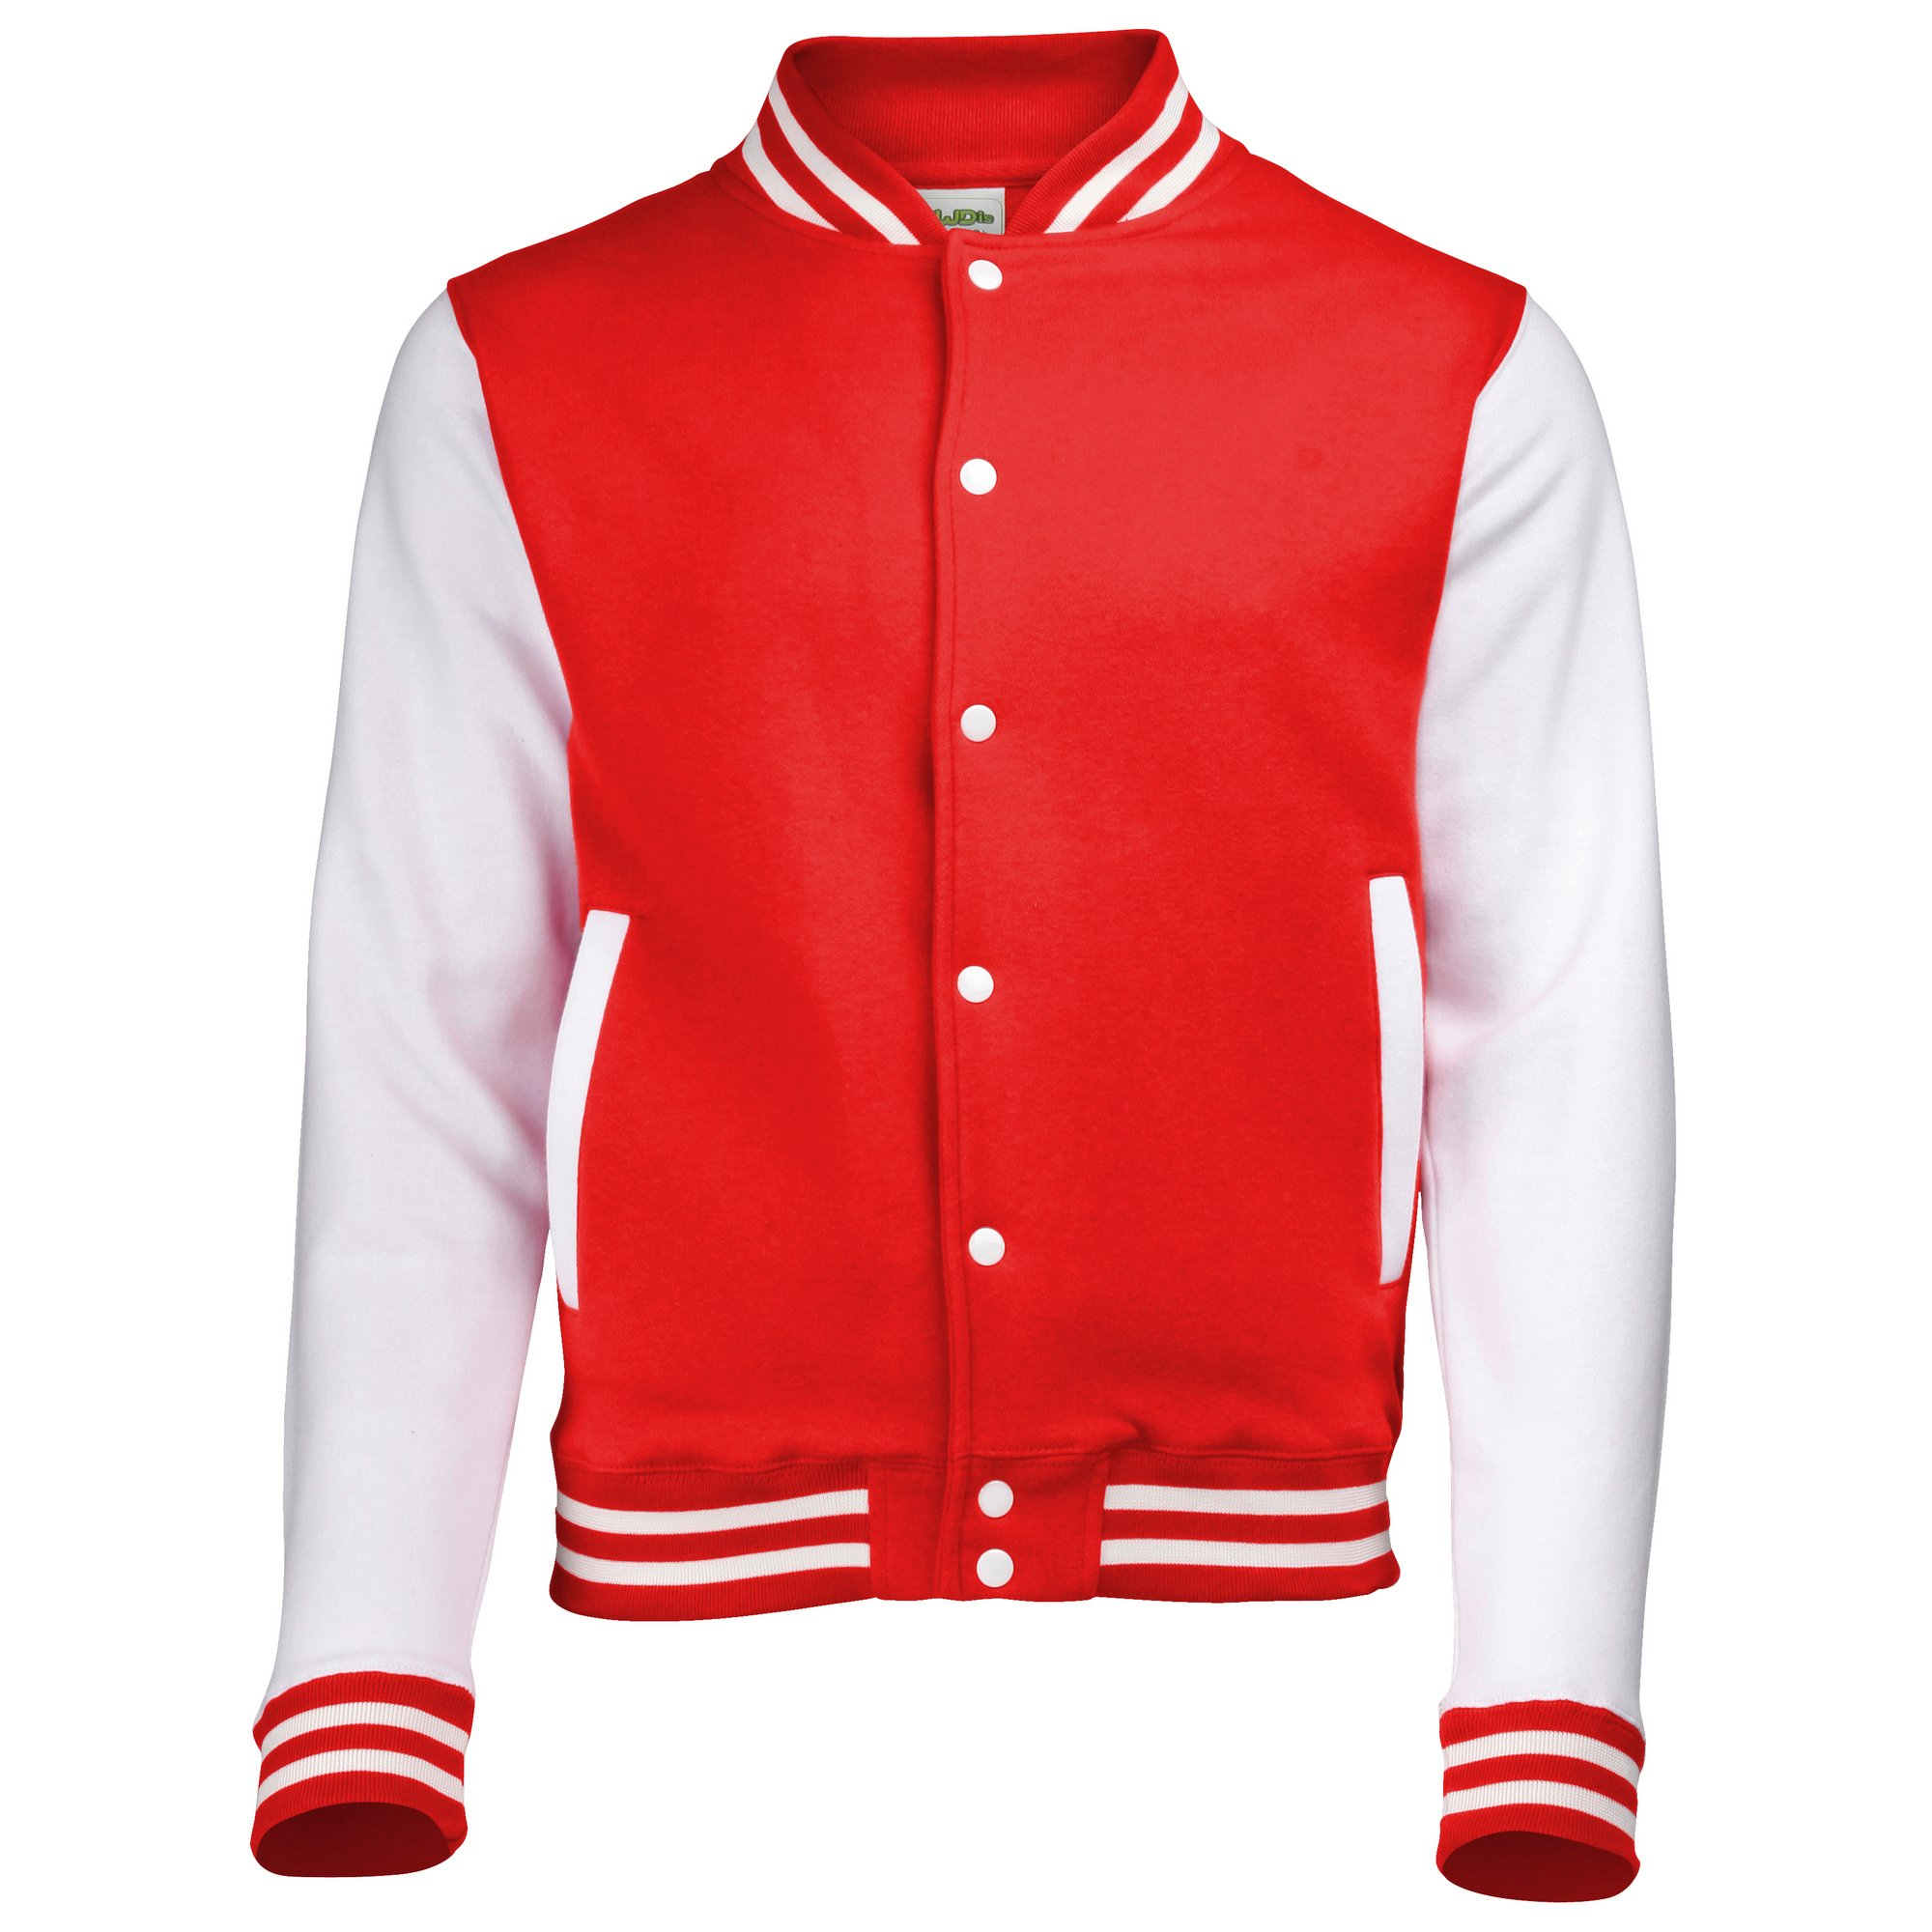 Awdis Unisex Varsity Jacket (M) (Fire Red/White)